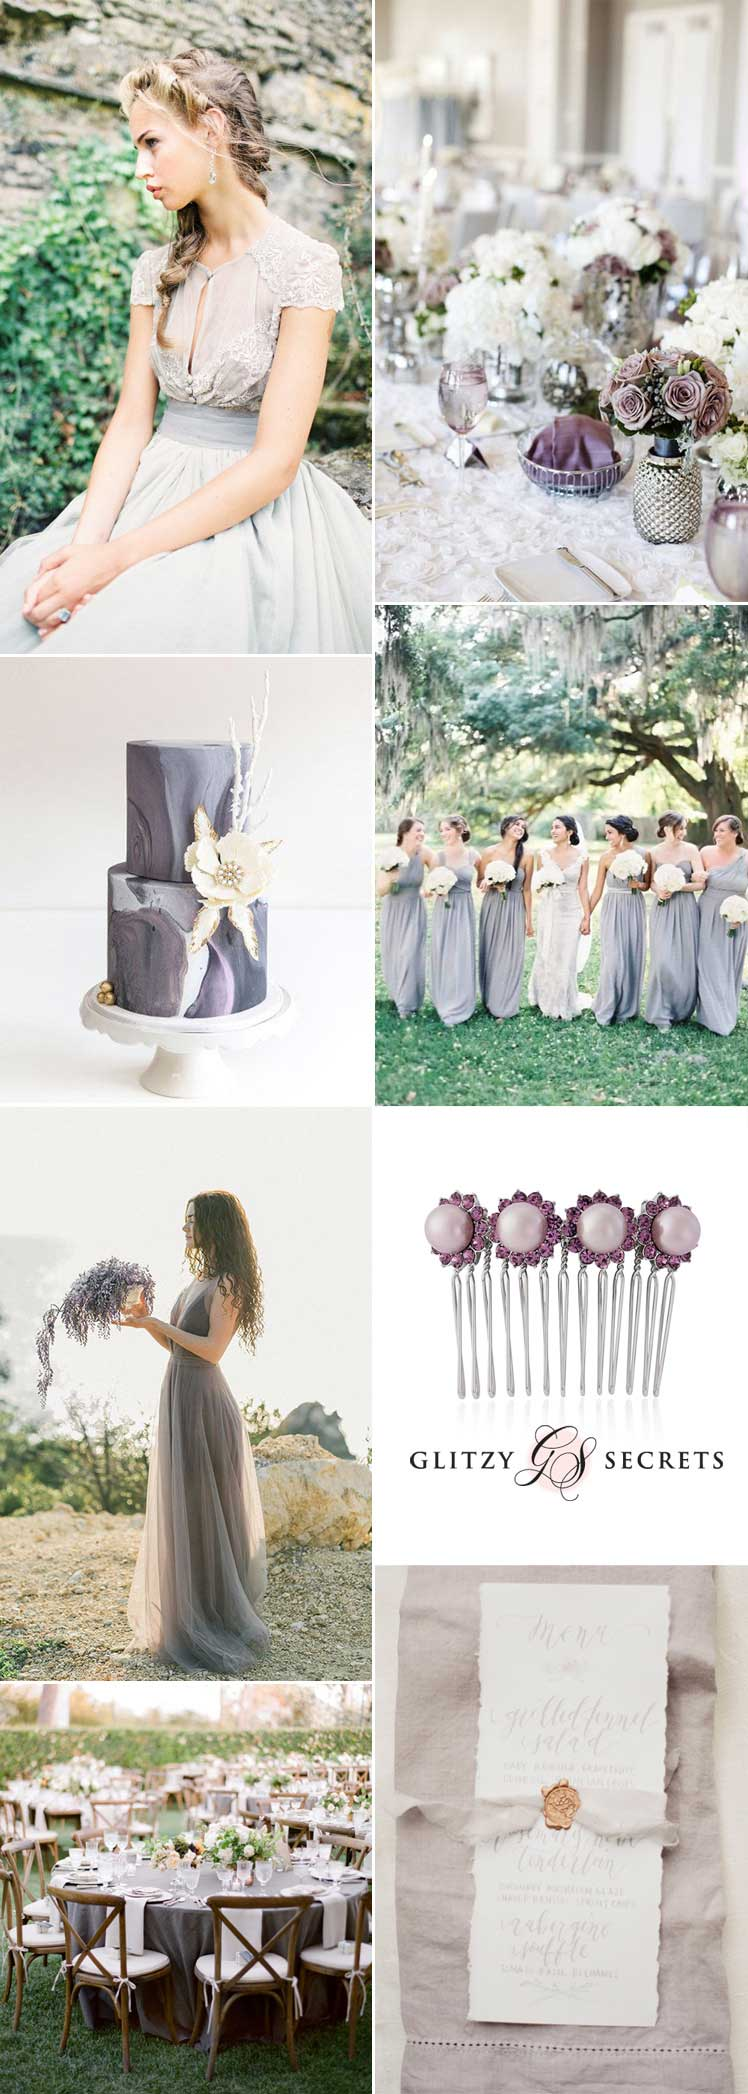 Beautifully Dusky Lilac Grey Wedding Ideas - Glitzy Secrets